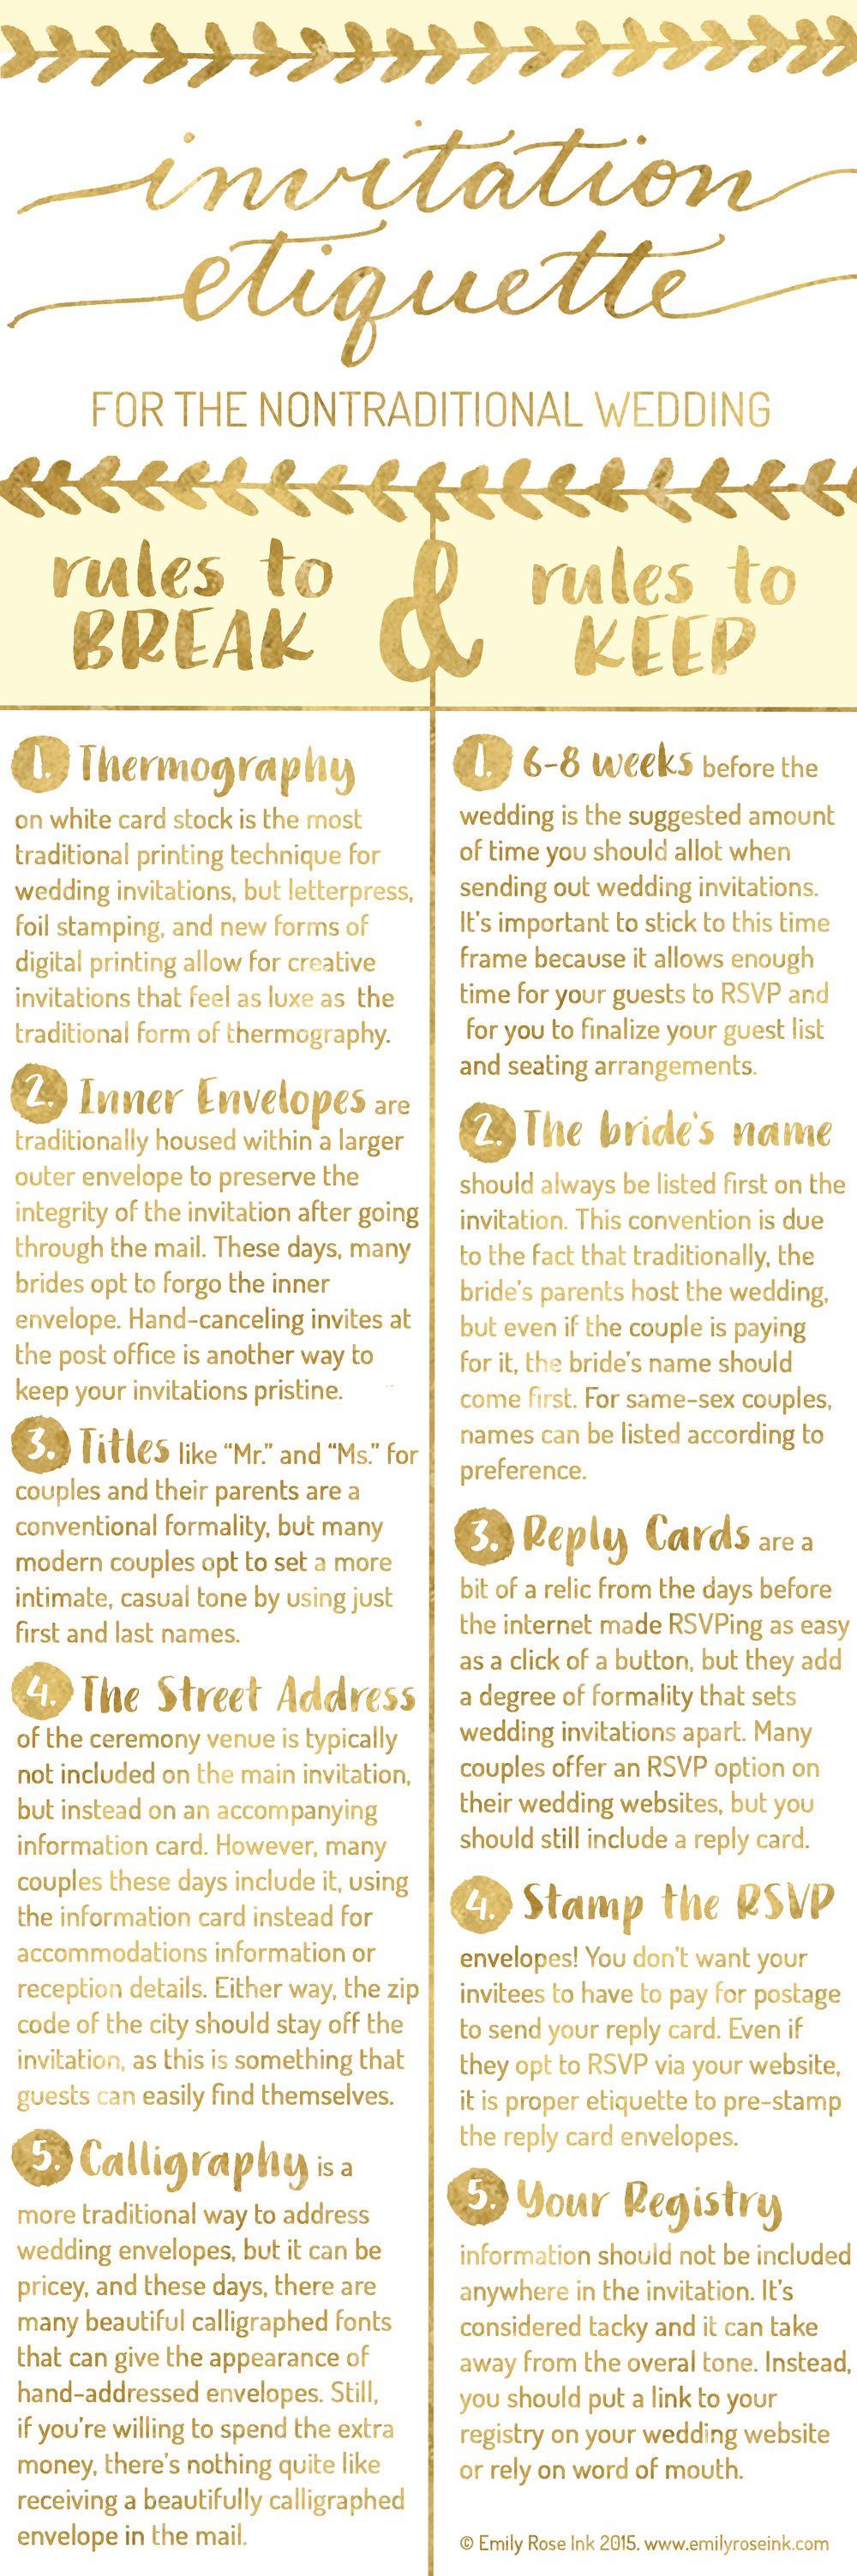 Invitation Etiquette for the Nontraditional Wedding   Nontraditional ...